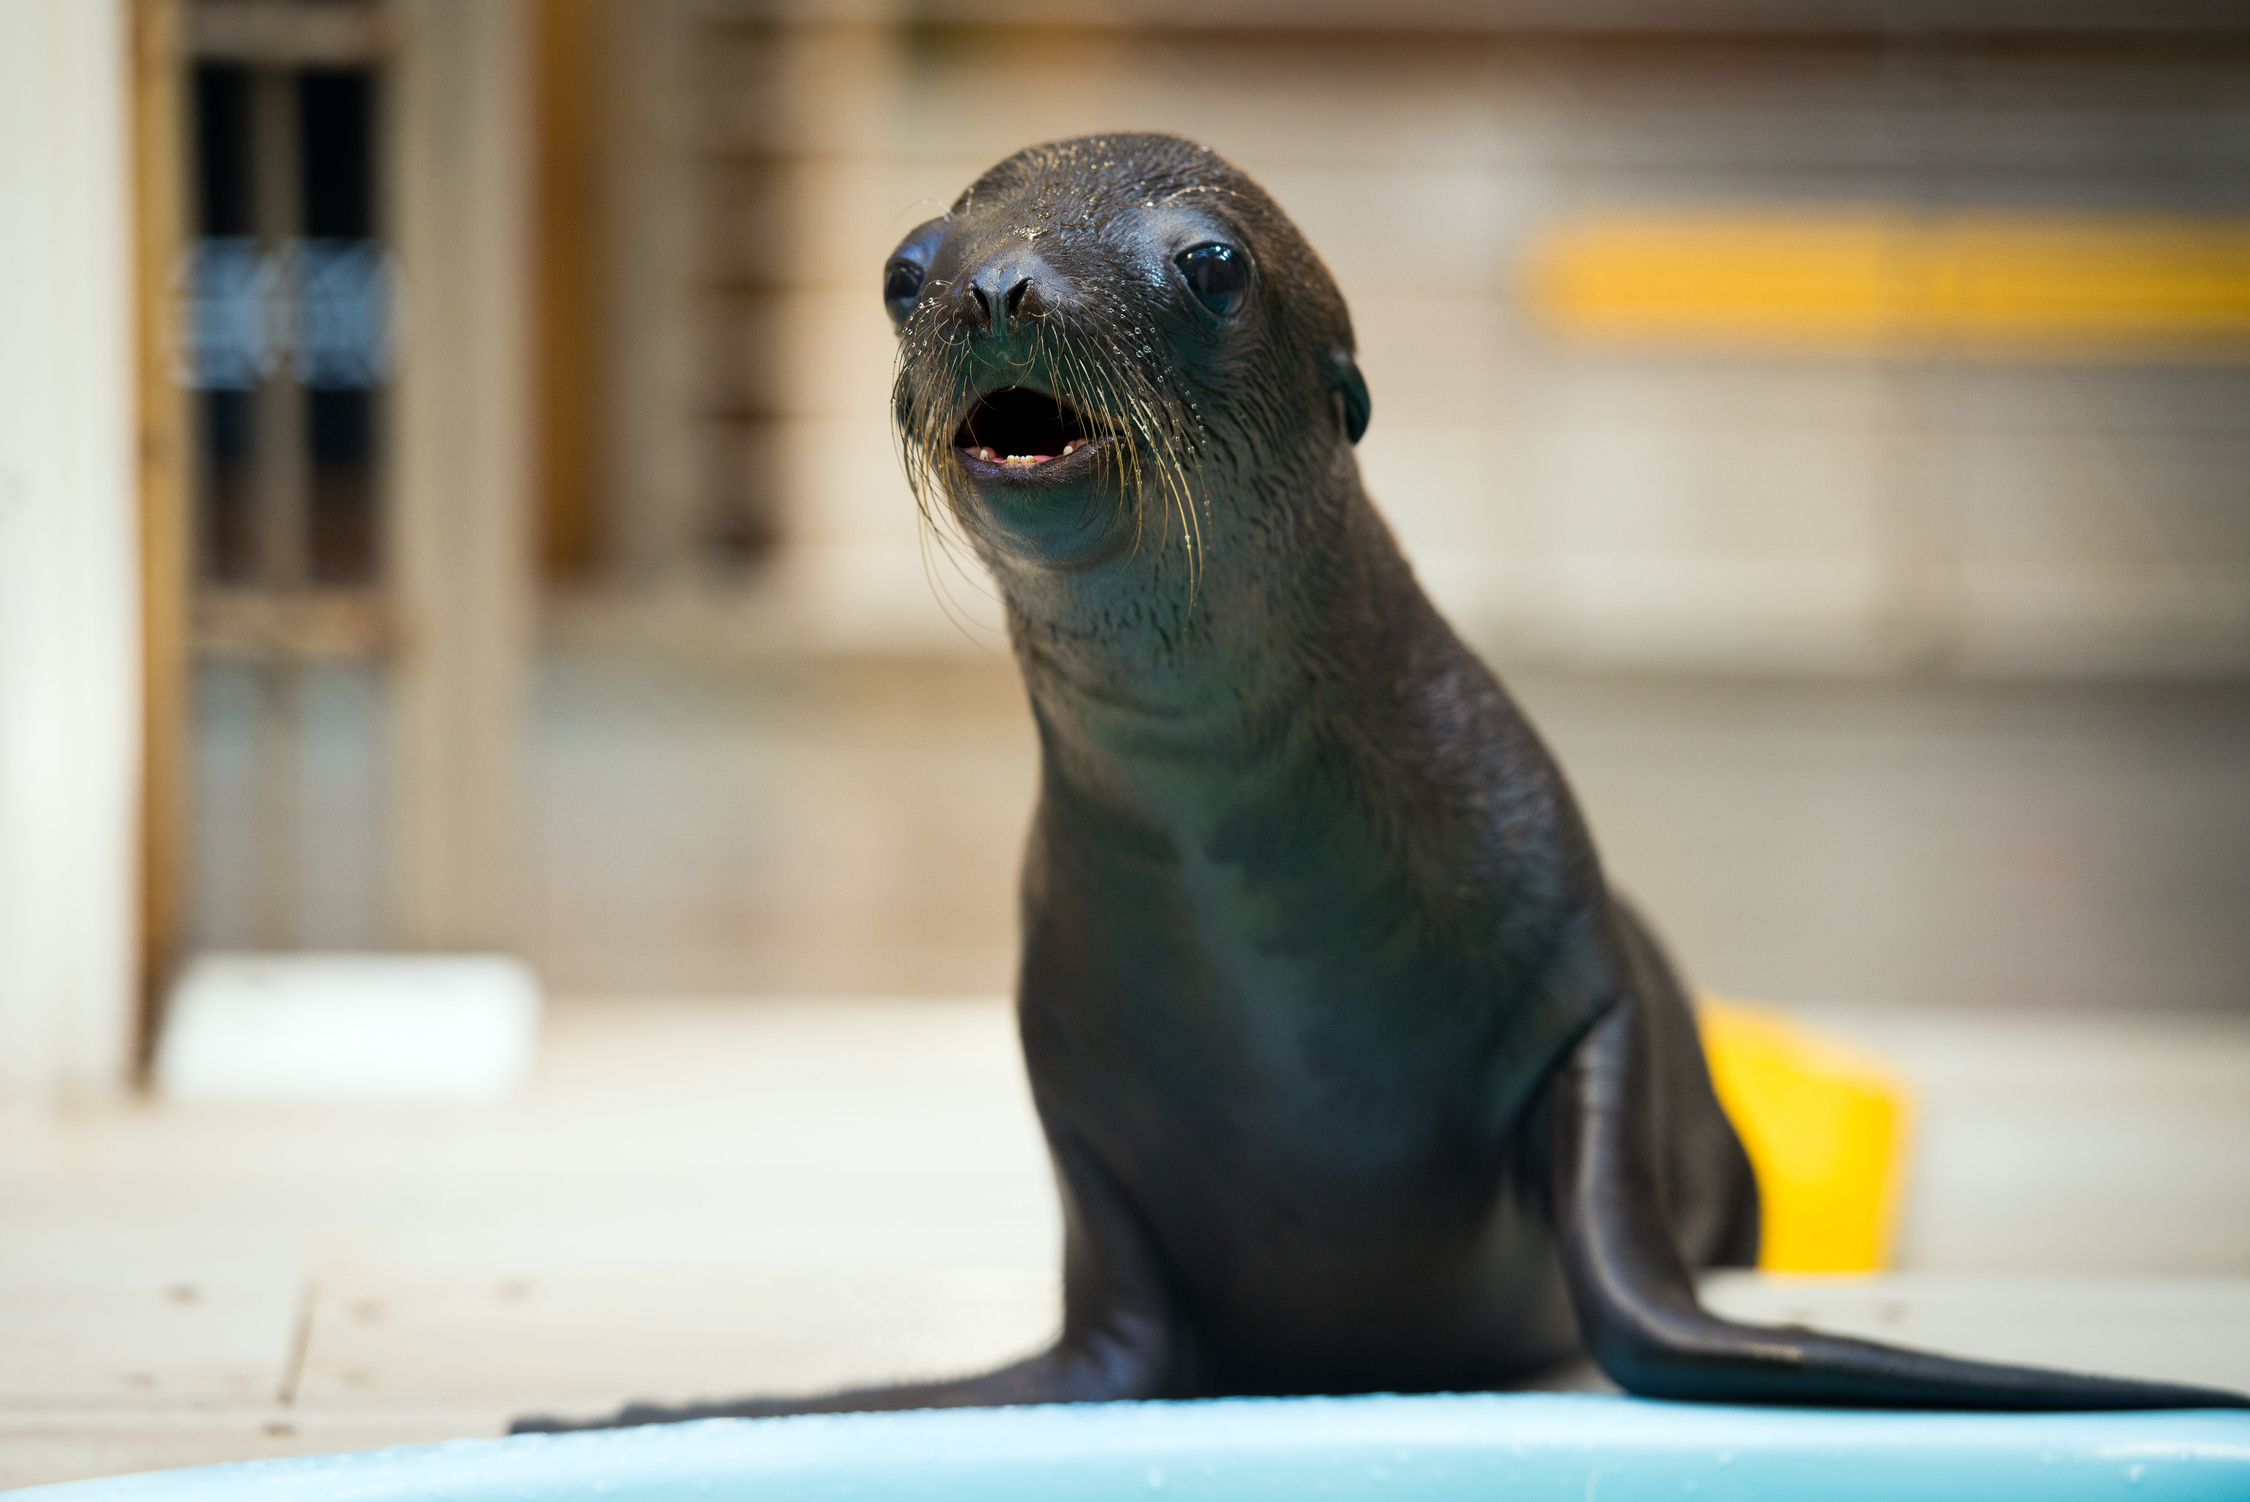 Sea-Lion-Baby-Max-0001-8088 Volunteer Application Form Pdf on medical release form pdf, reference check form pdf, general information form pdf, general release form pdf, wish list form pdf,